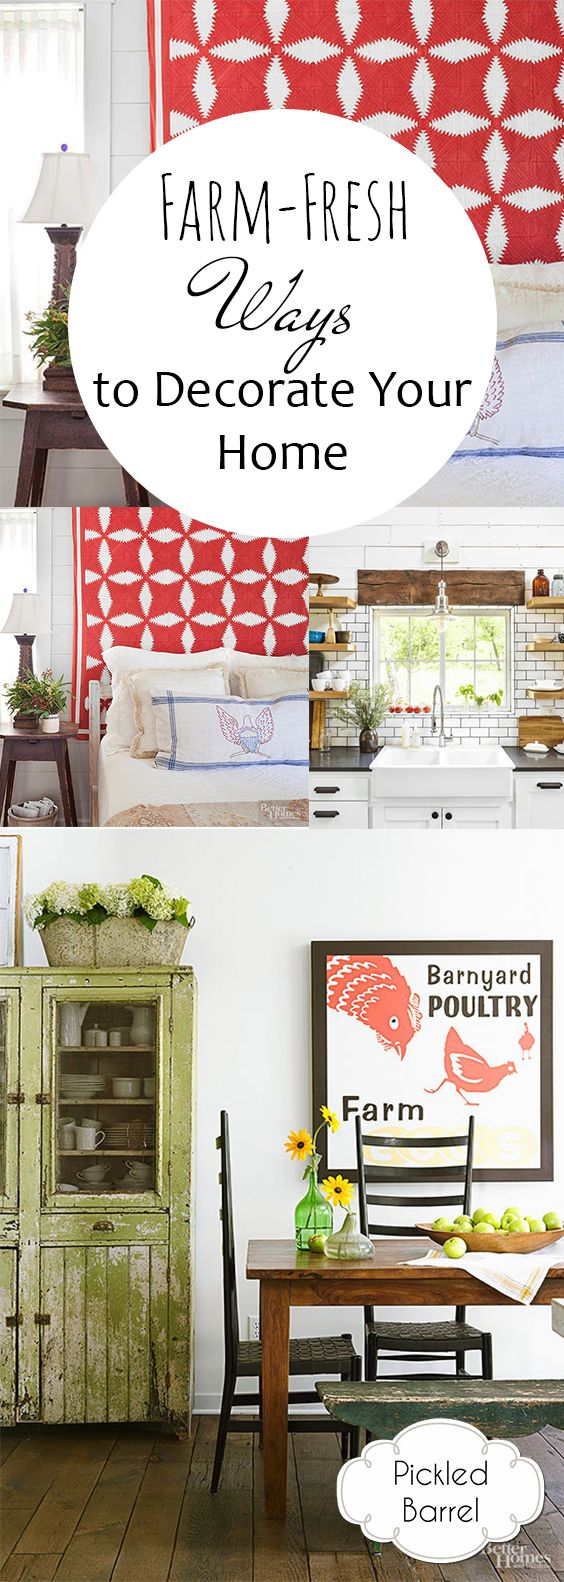 153 best Repurpose Projects images on Pinterest | Diy household tips ...